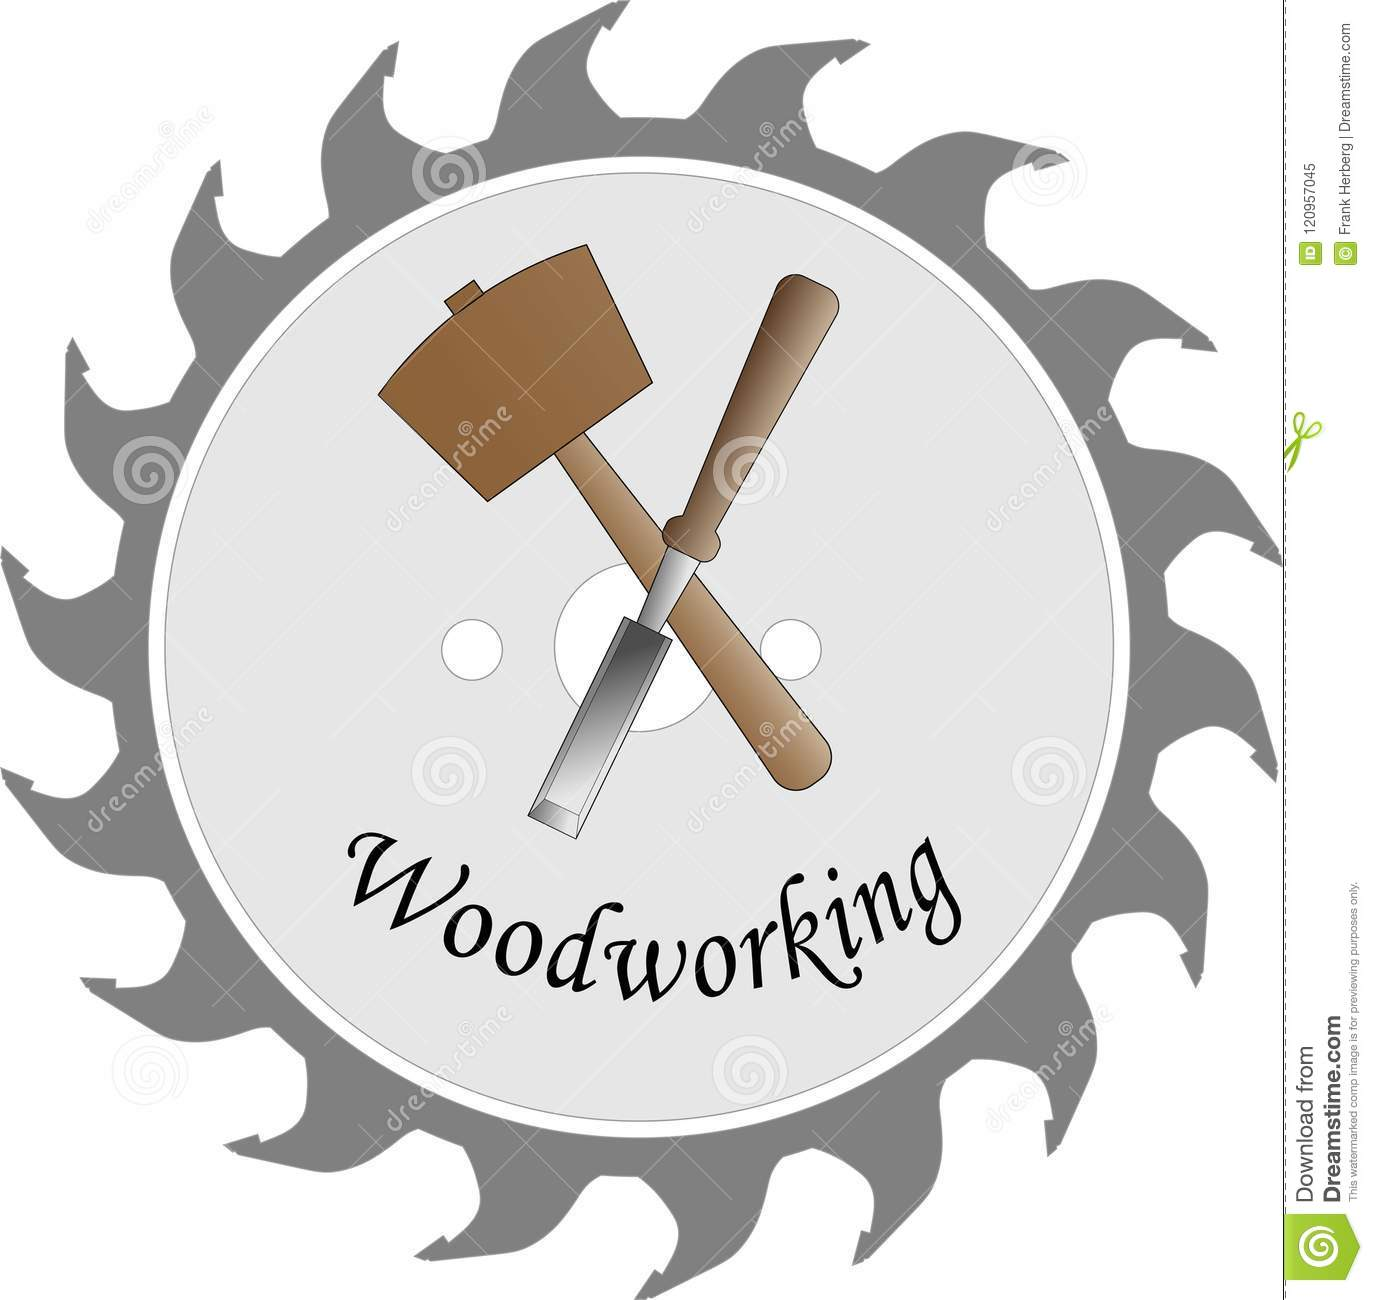 Logo For The Wood Crafts Stock Vector Illustration Of Crafts